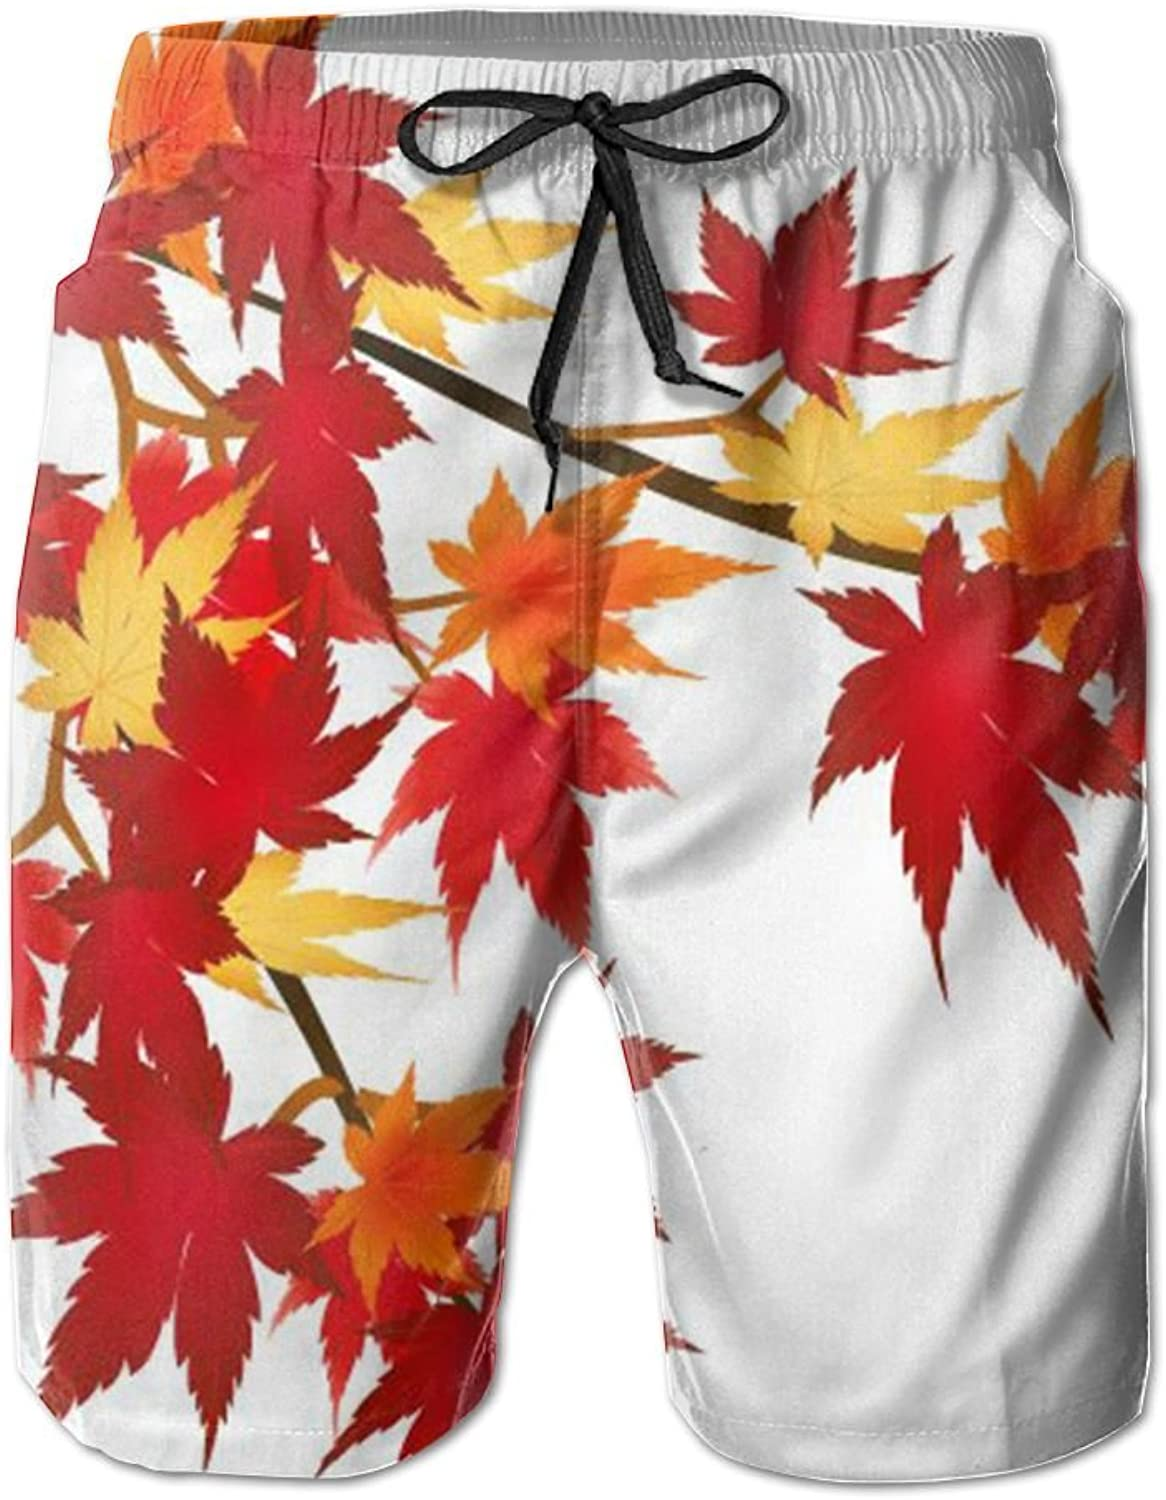 26c6963da980 CUTEDWARF Men's 3D Canadian Flag Maple Leaf Beach Casual Shorts Printing  Shorts nujexk293-Sporting goods